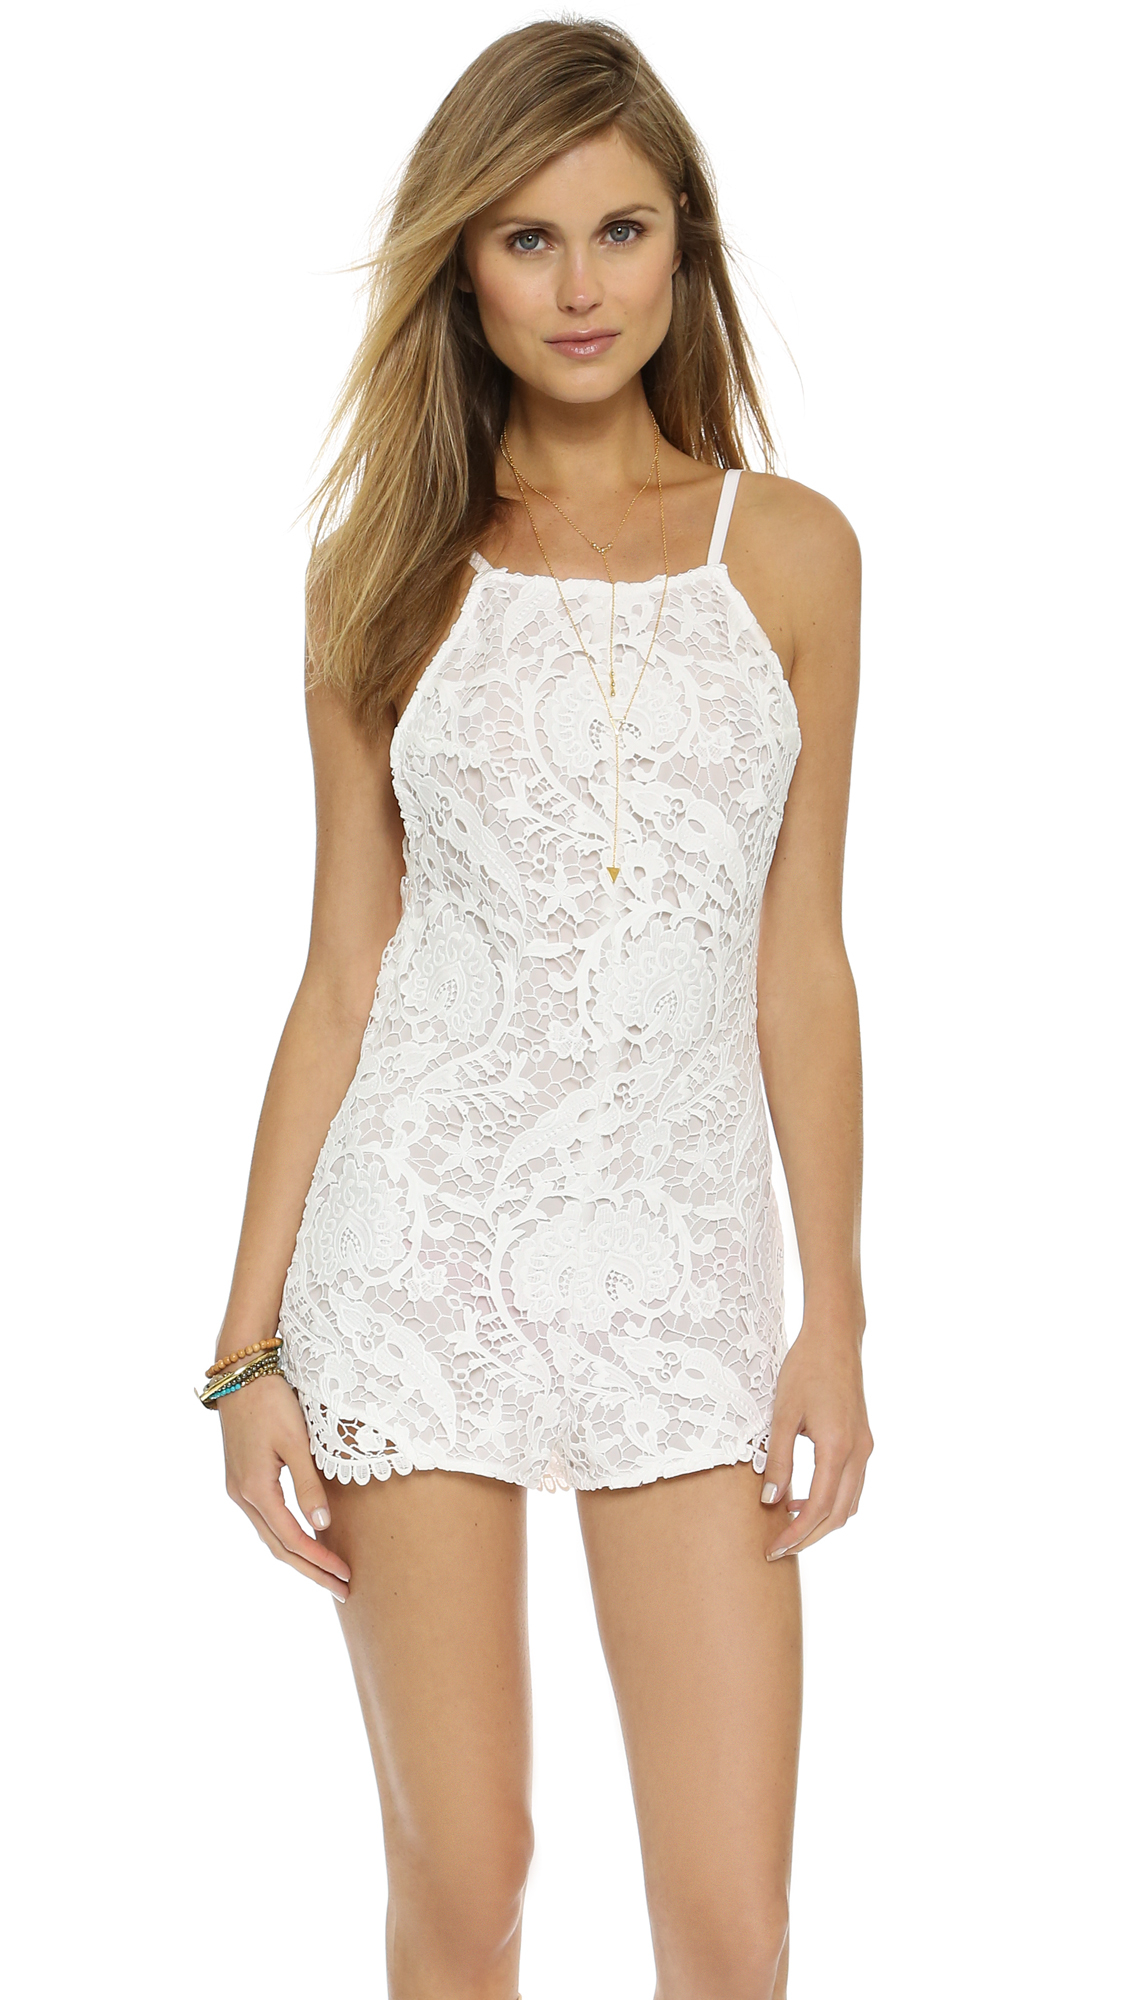 6dca9df40a2 Lyst - Stone Cold Fox Ryder Romper - White in White